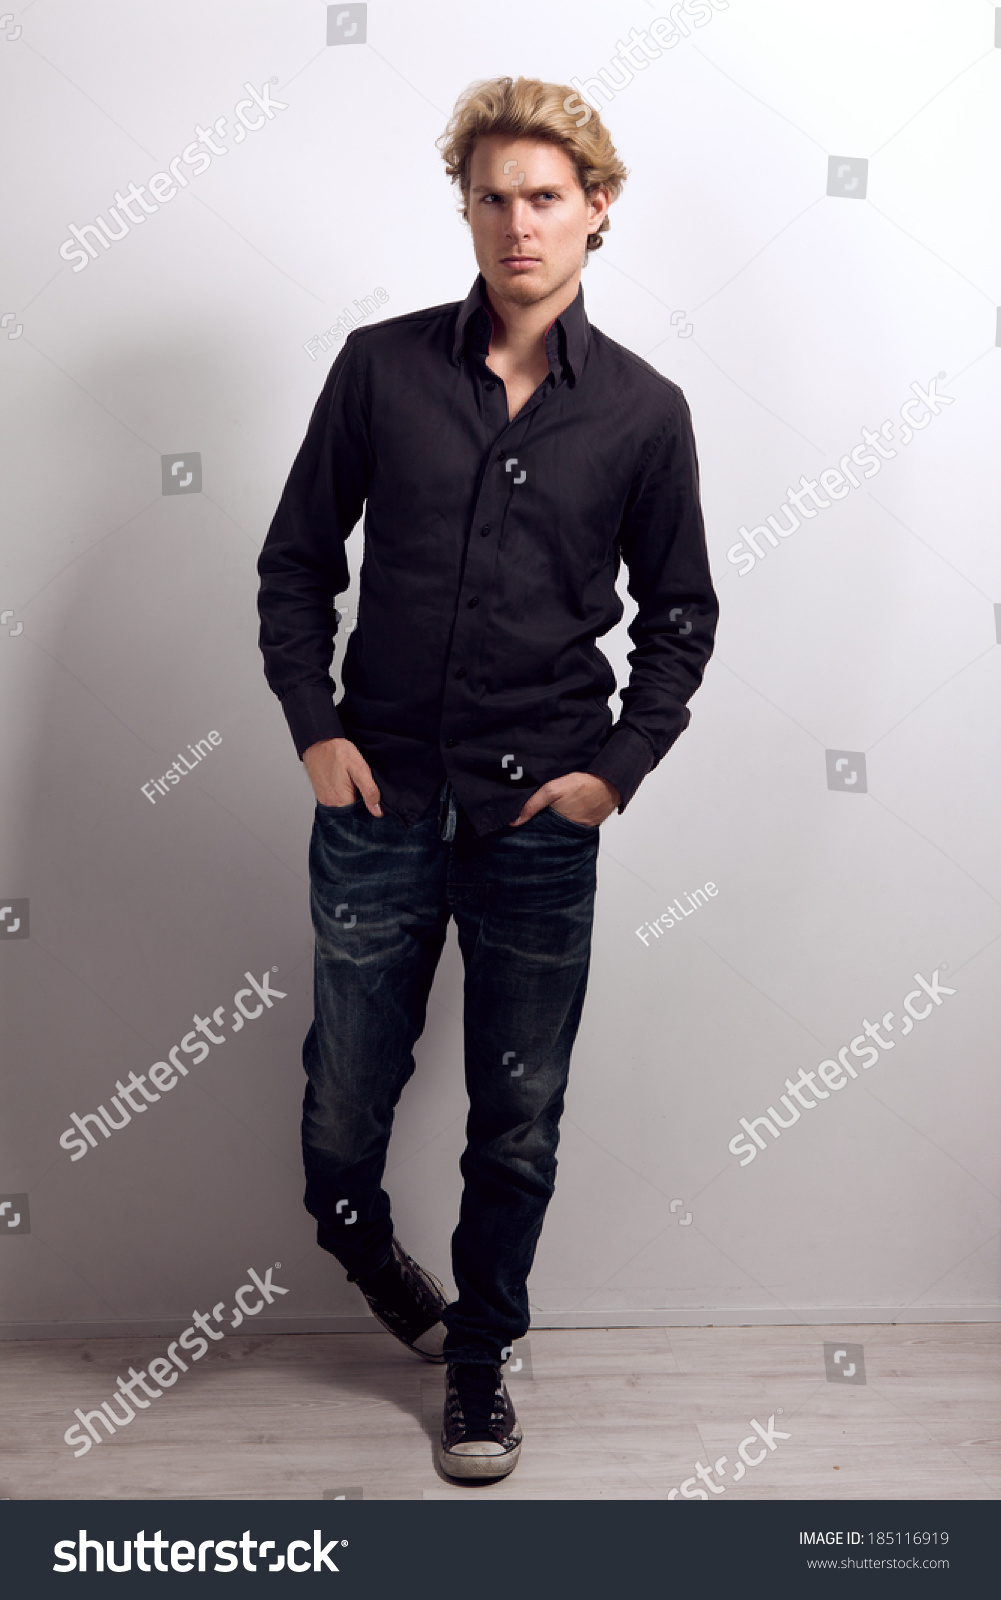 Attractive Male Blonde Hair Dressed Black Stock Photo 185116919 ...